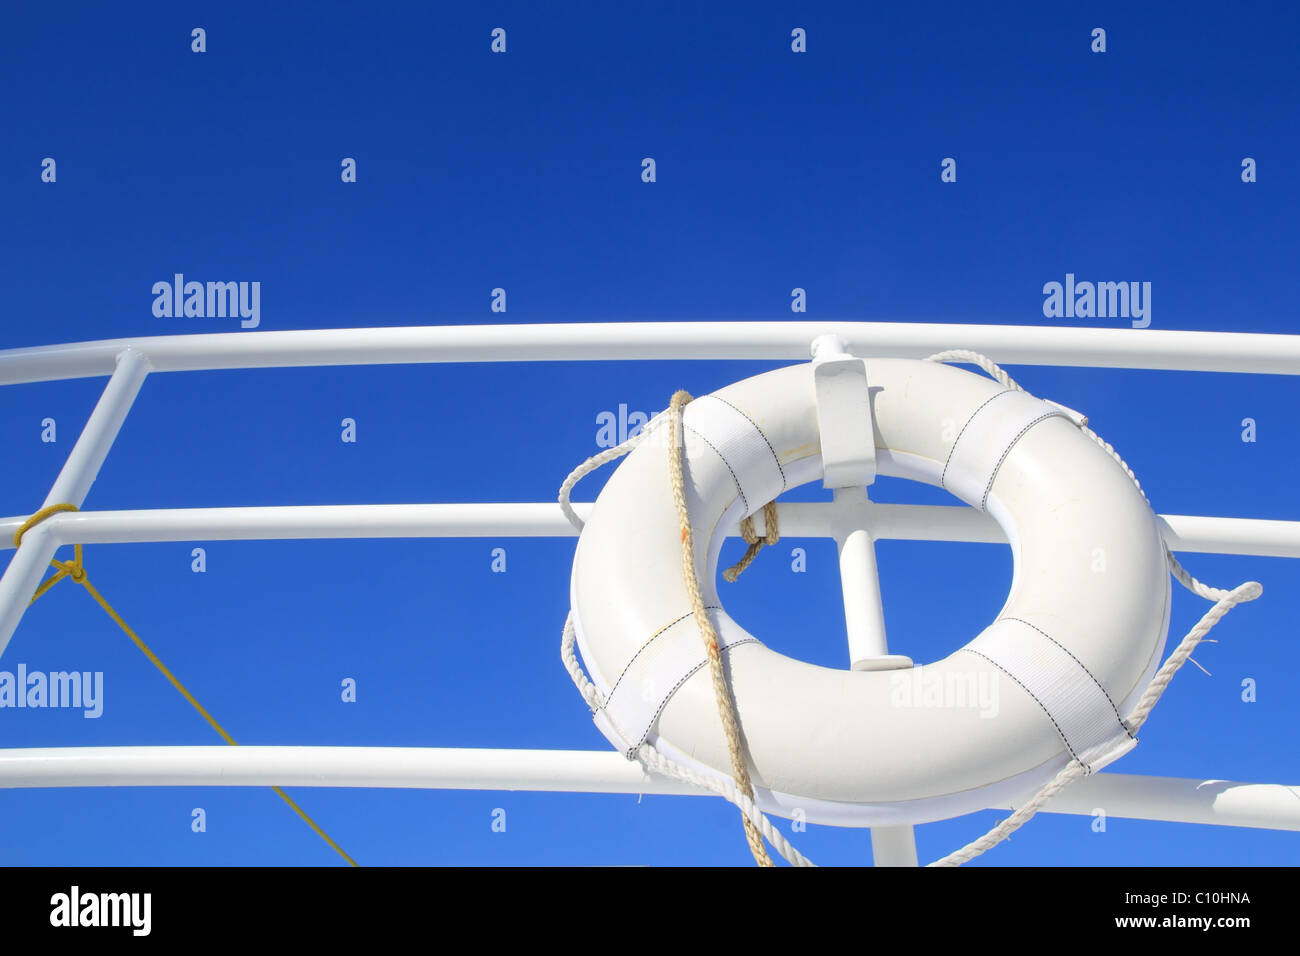 boat buoy white hanged in railing summer vacation blue sky - Stock Image